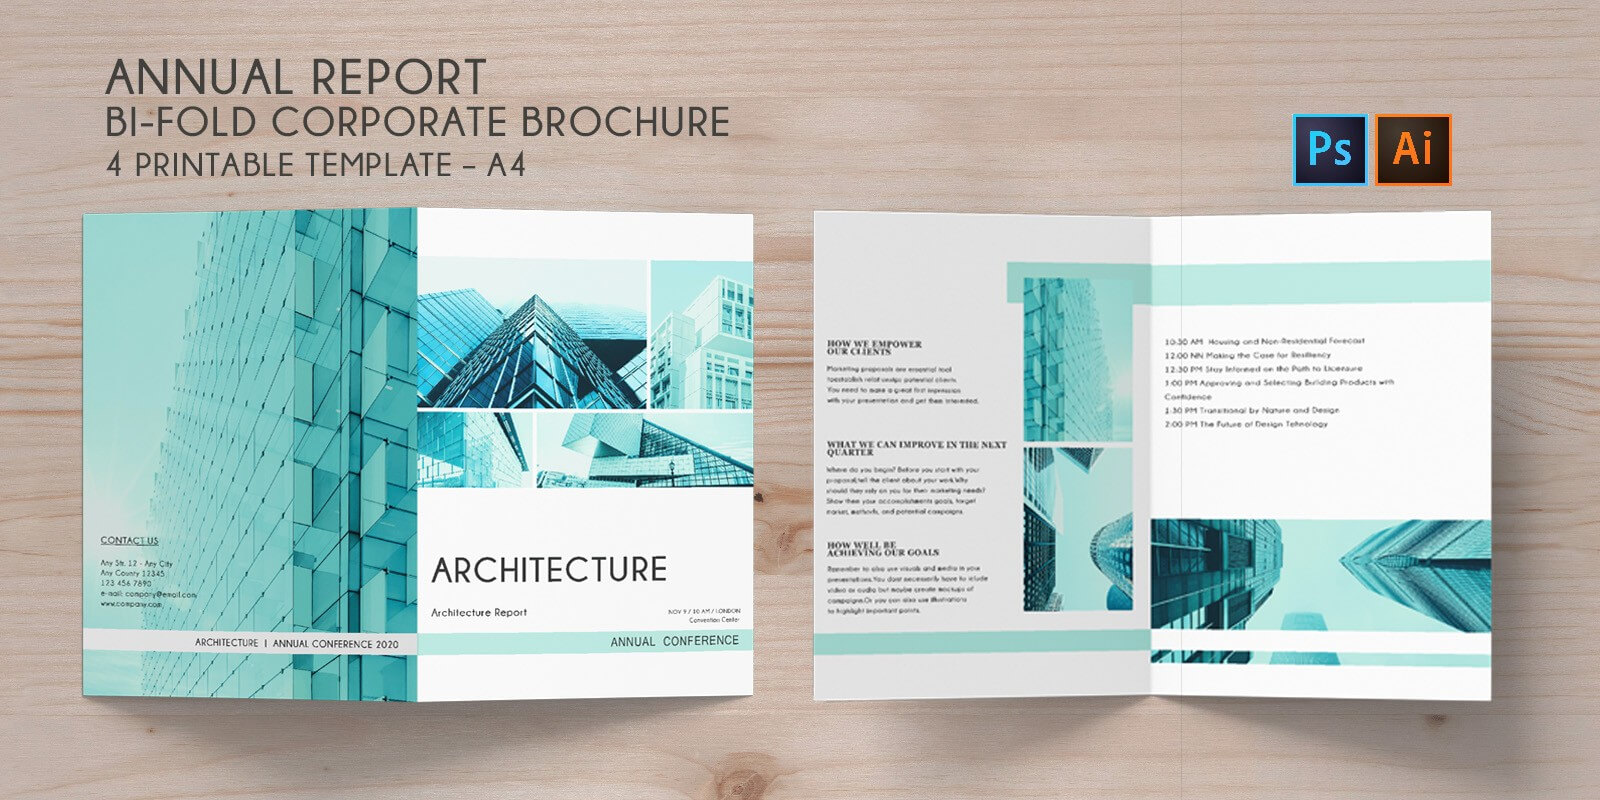 Bi-Fold Brochure Annual Conference - 4 Template in Brochure 4 Fold Template